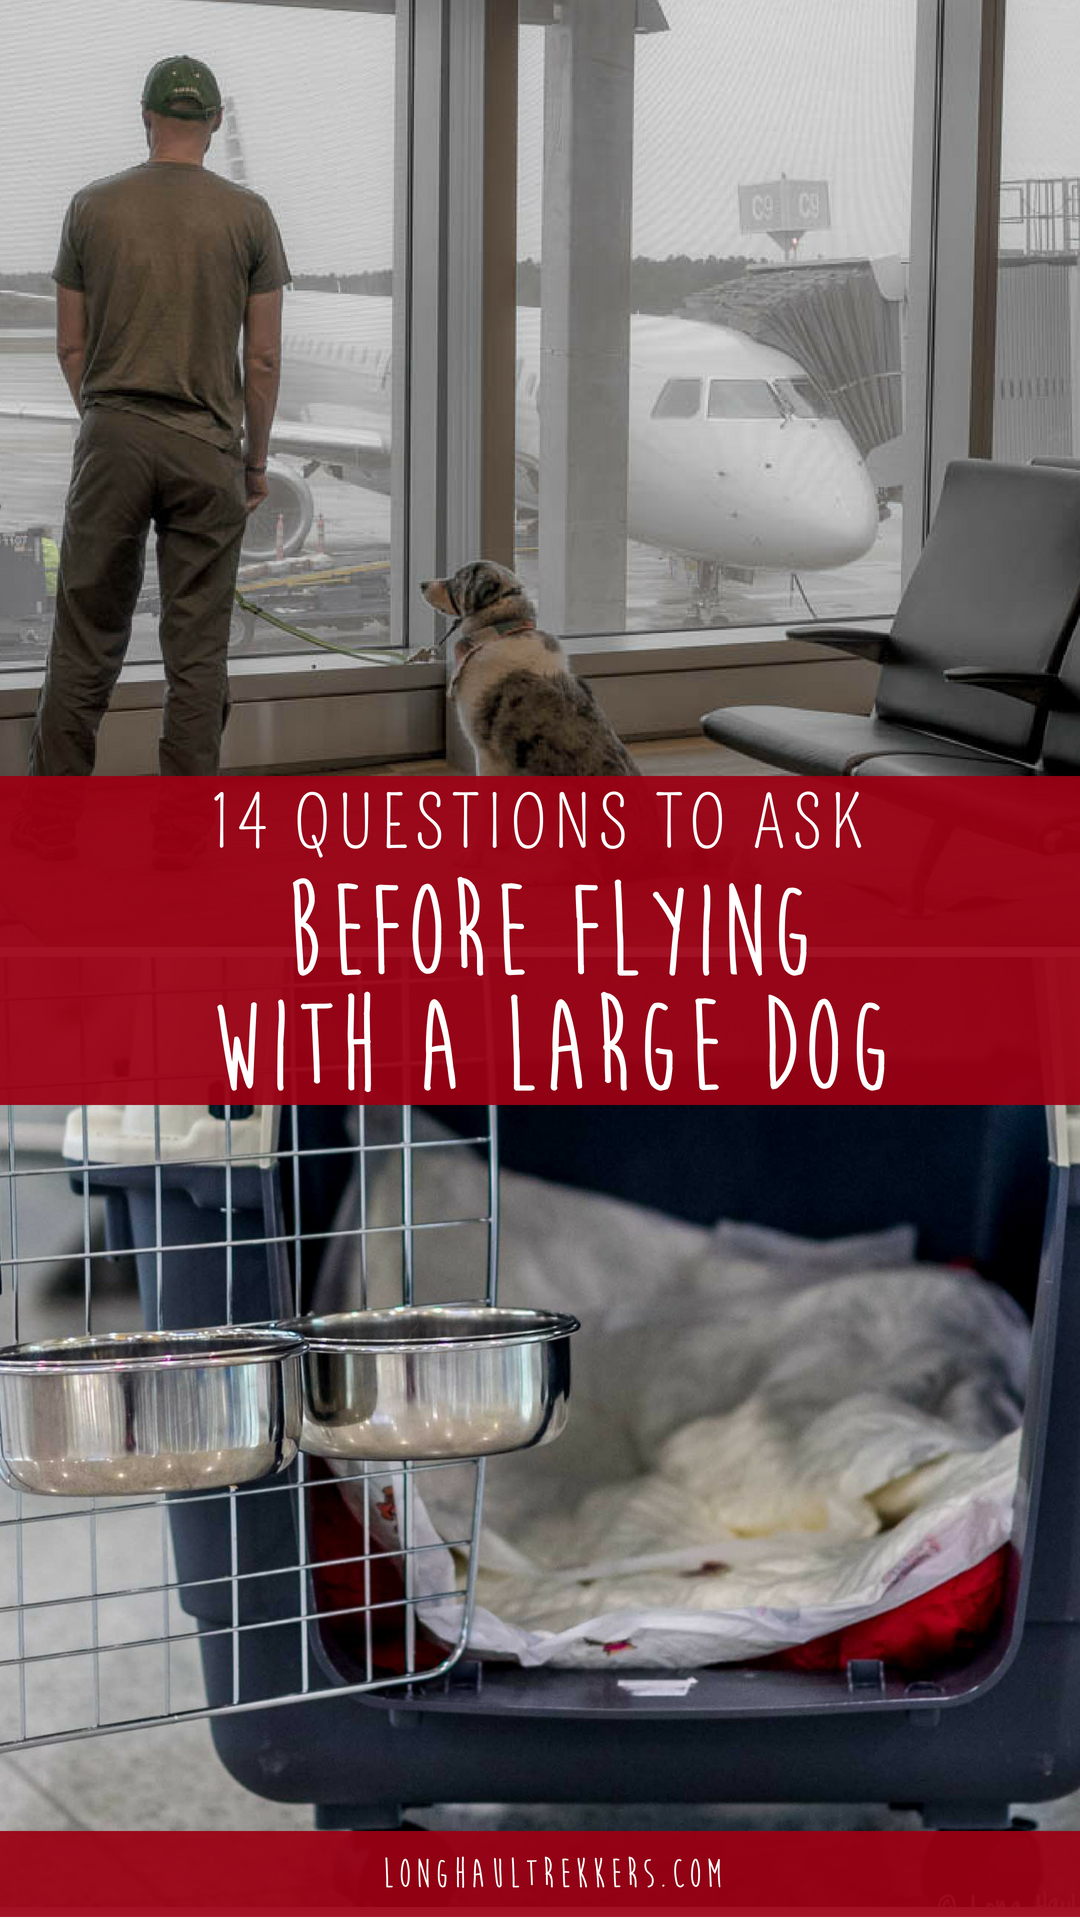 Before flying with a large dog in cargo, make sure you know the answers to the following questions.